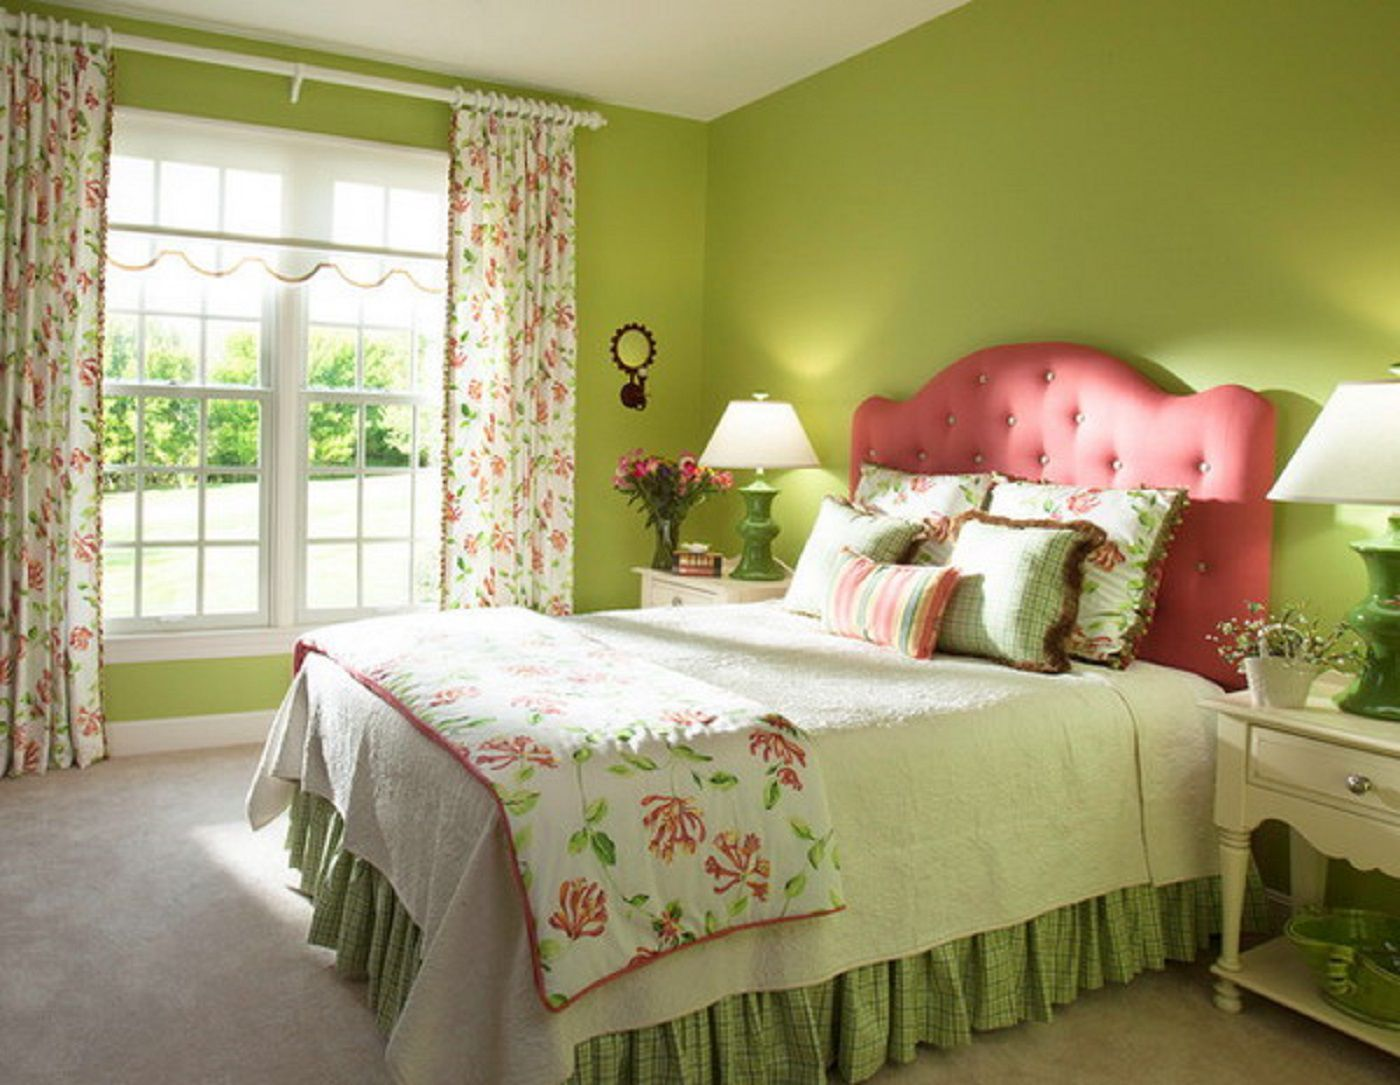 Bedroom Decorating Ideas for Every Color of the Rainbow